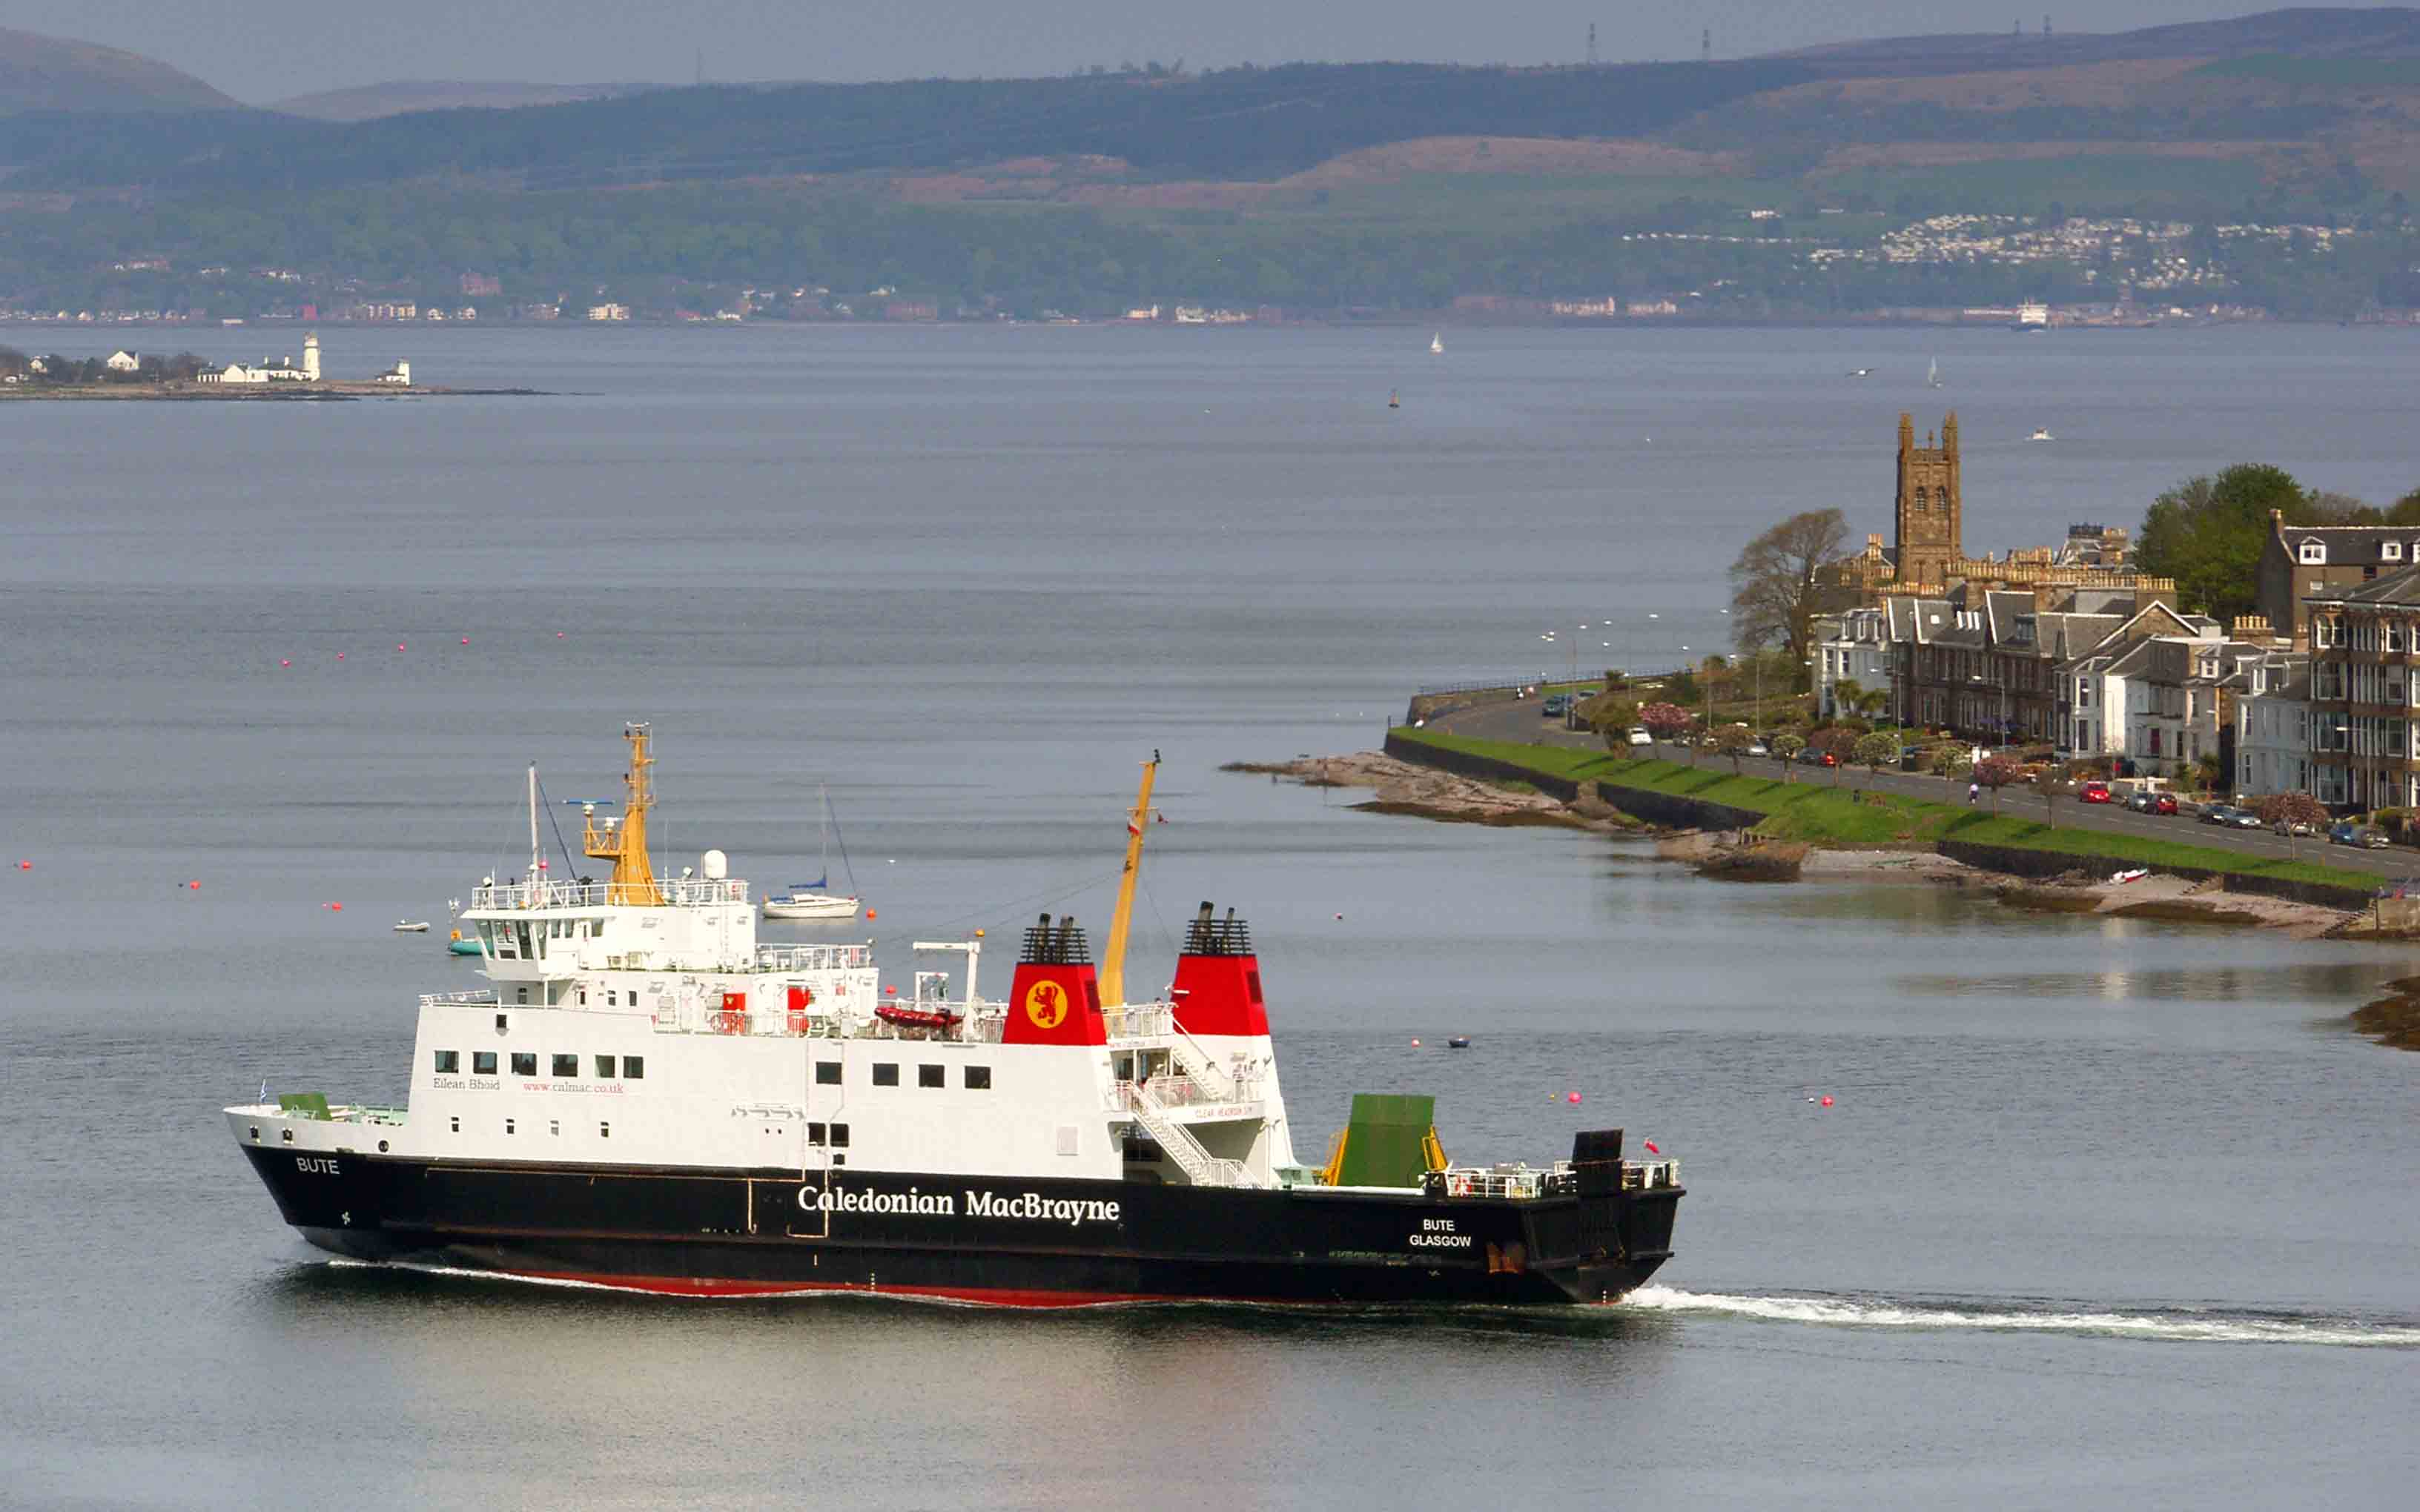 Bute leaving Rothesay (Ships of CalMac)